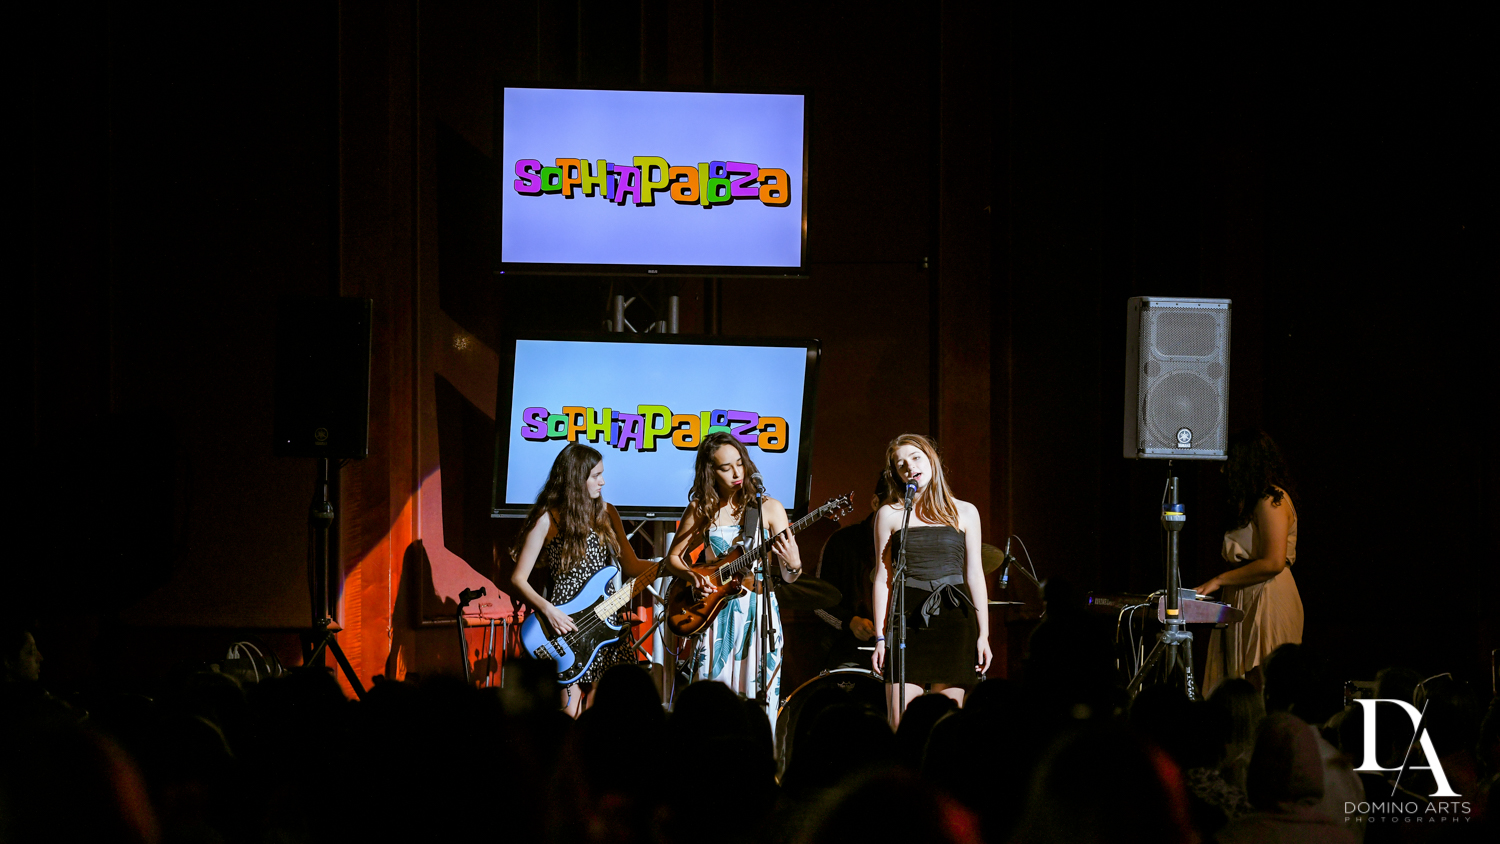 live performance at Music Festival Bat Mitzvah at The Fillmore Miami Beach by Domino Arts Photography